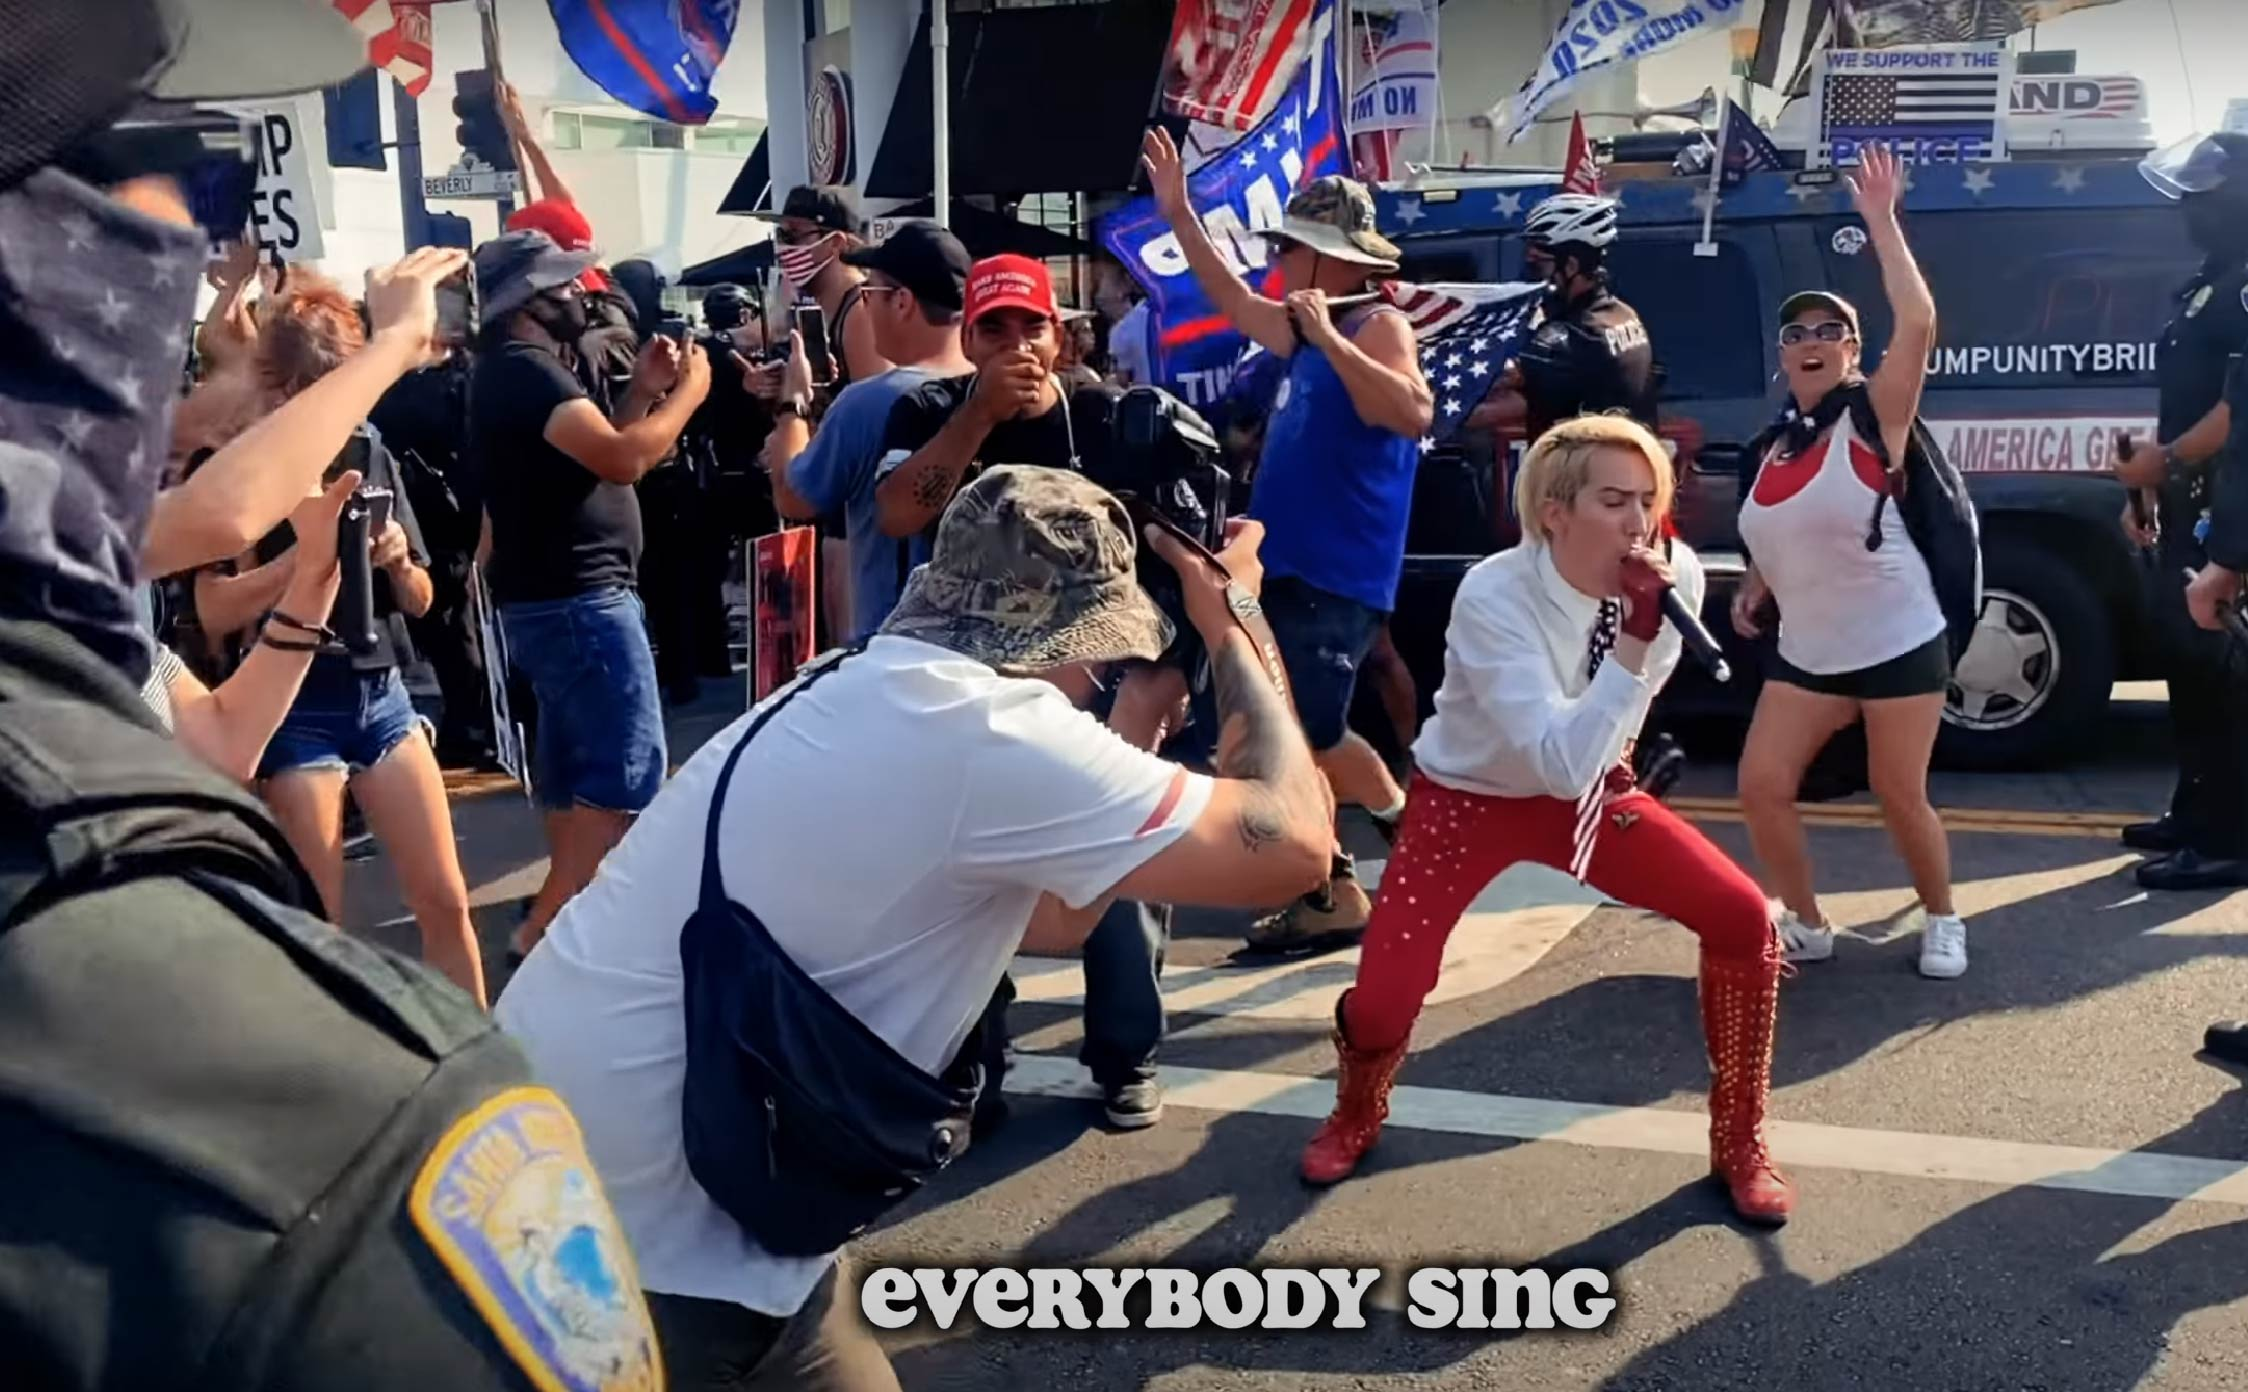 [WATCH] Pro-Trump Singer Turns an Angry Beverly Hills BLM Protest Into a Huge MAGA Dance Party